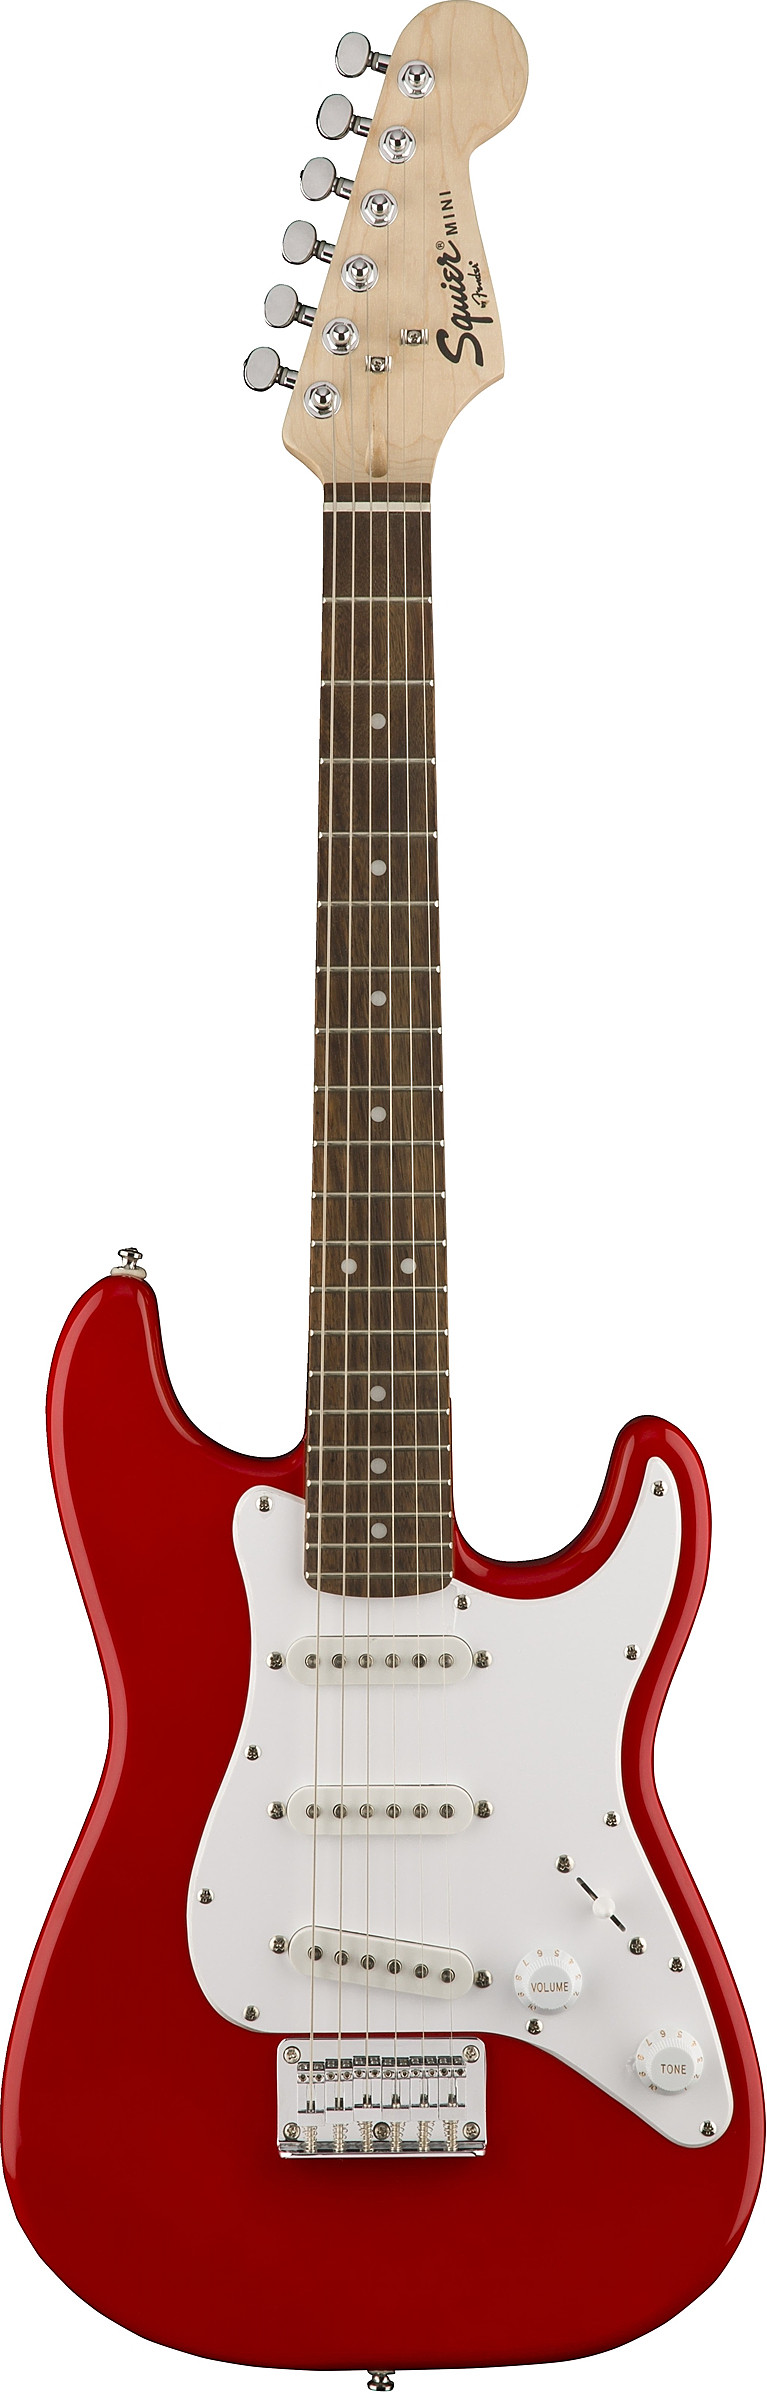 squier by fender mini strat review. Black Bedroom Furniture Sets. Home Design Ideas